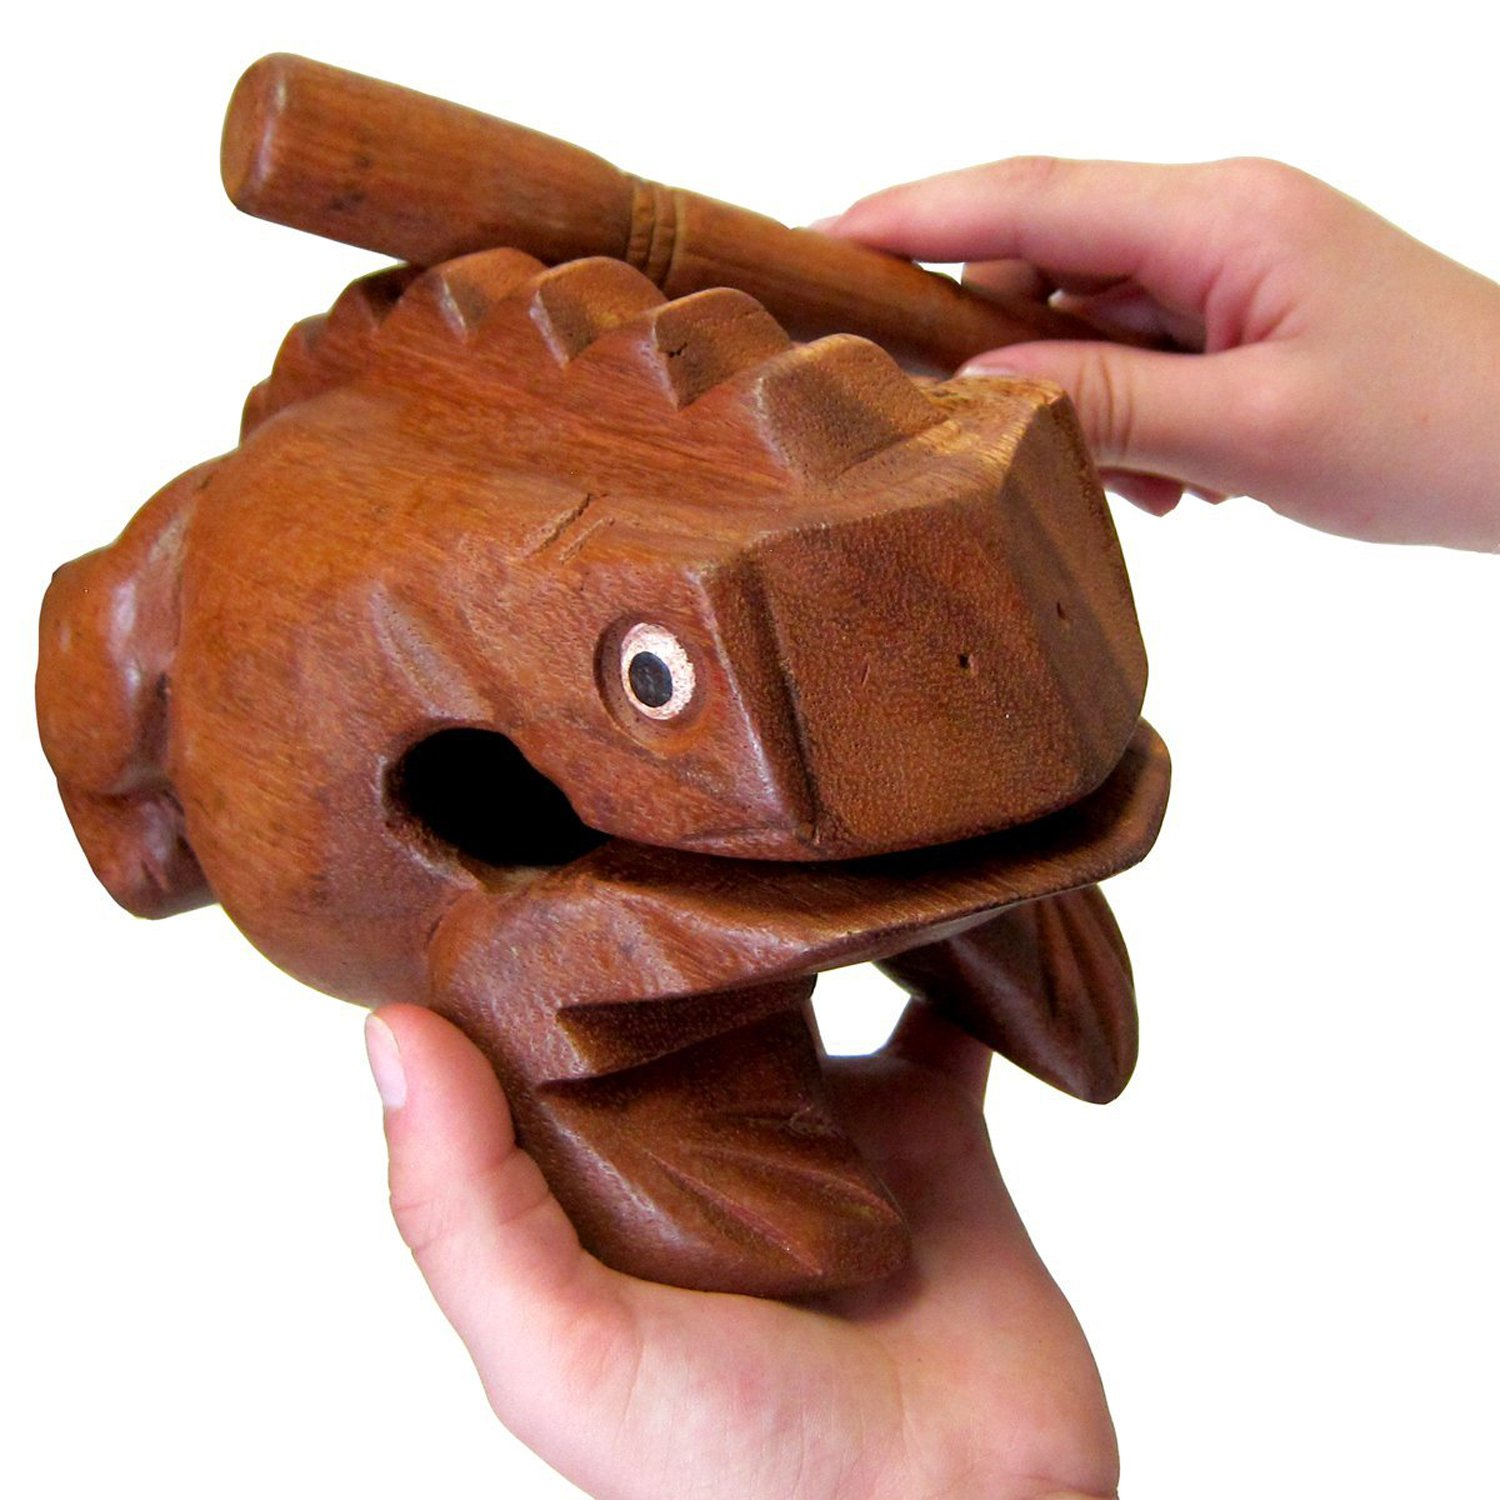 "Deluxe JUMBO 8"" Wood Frog Guiro Rasp - Musical Instrument Tone Block by World Percussion USA"